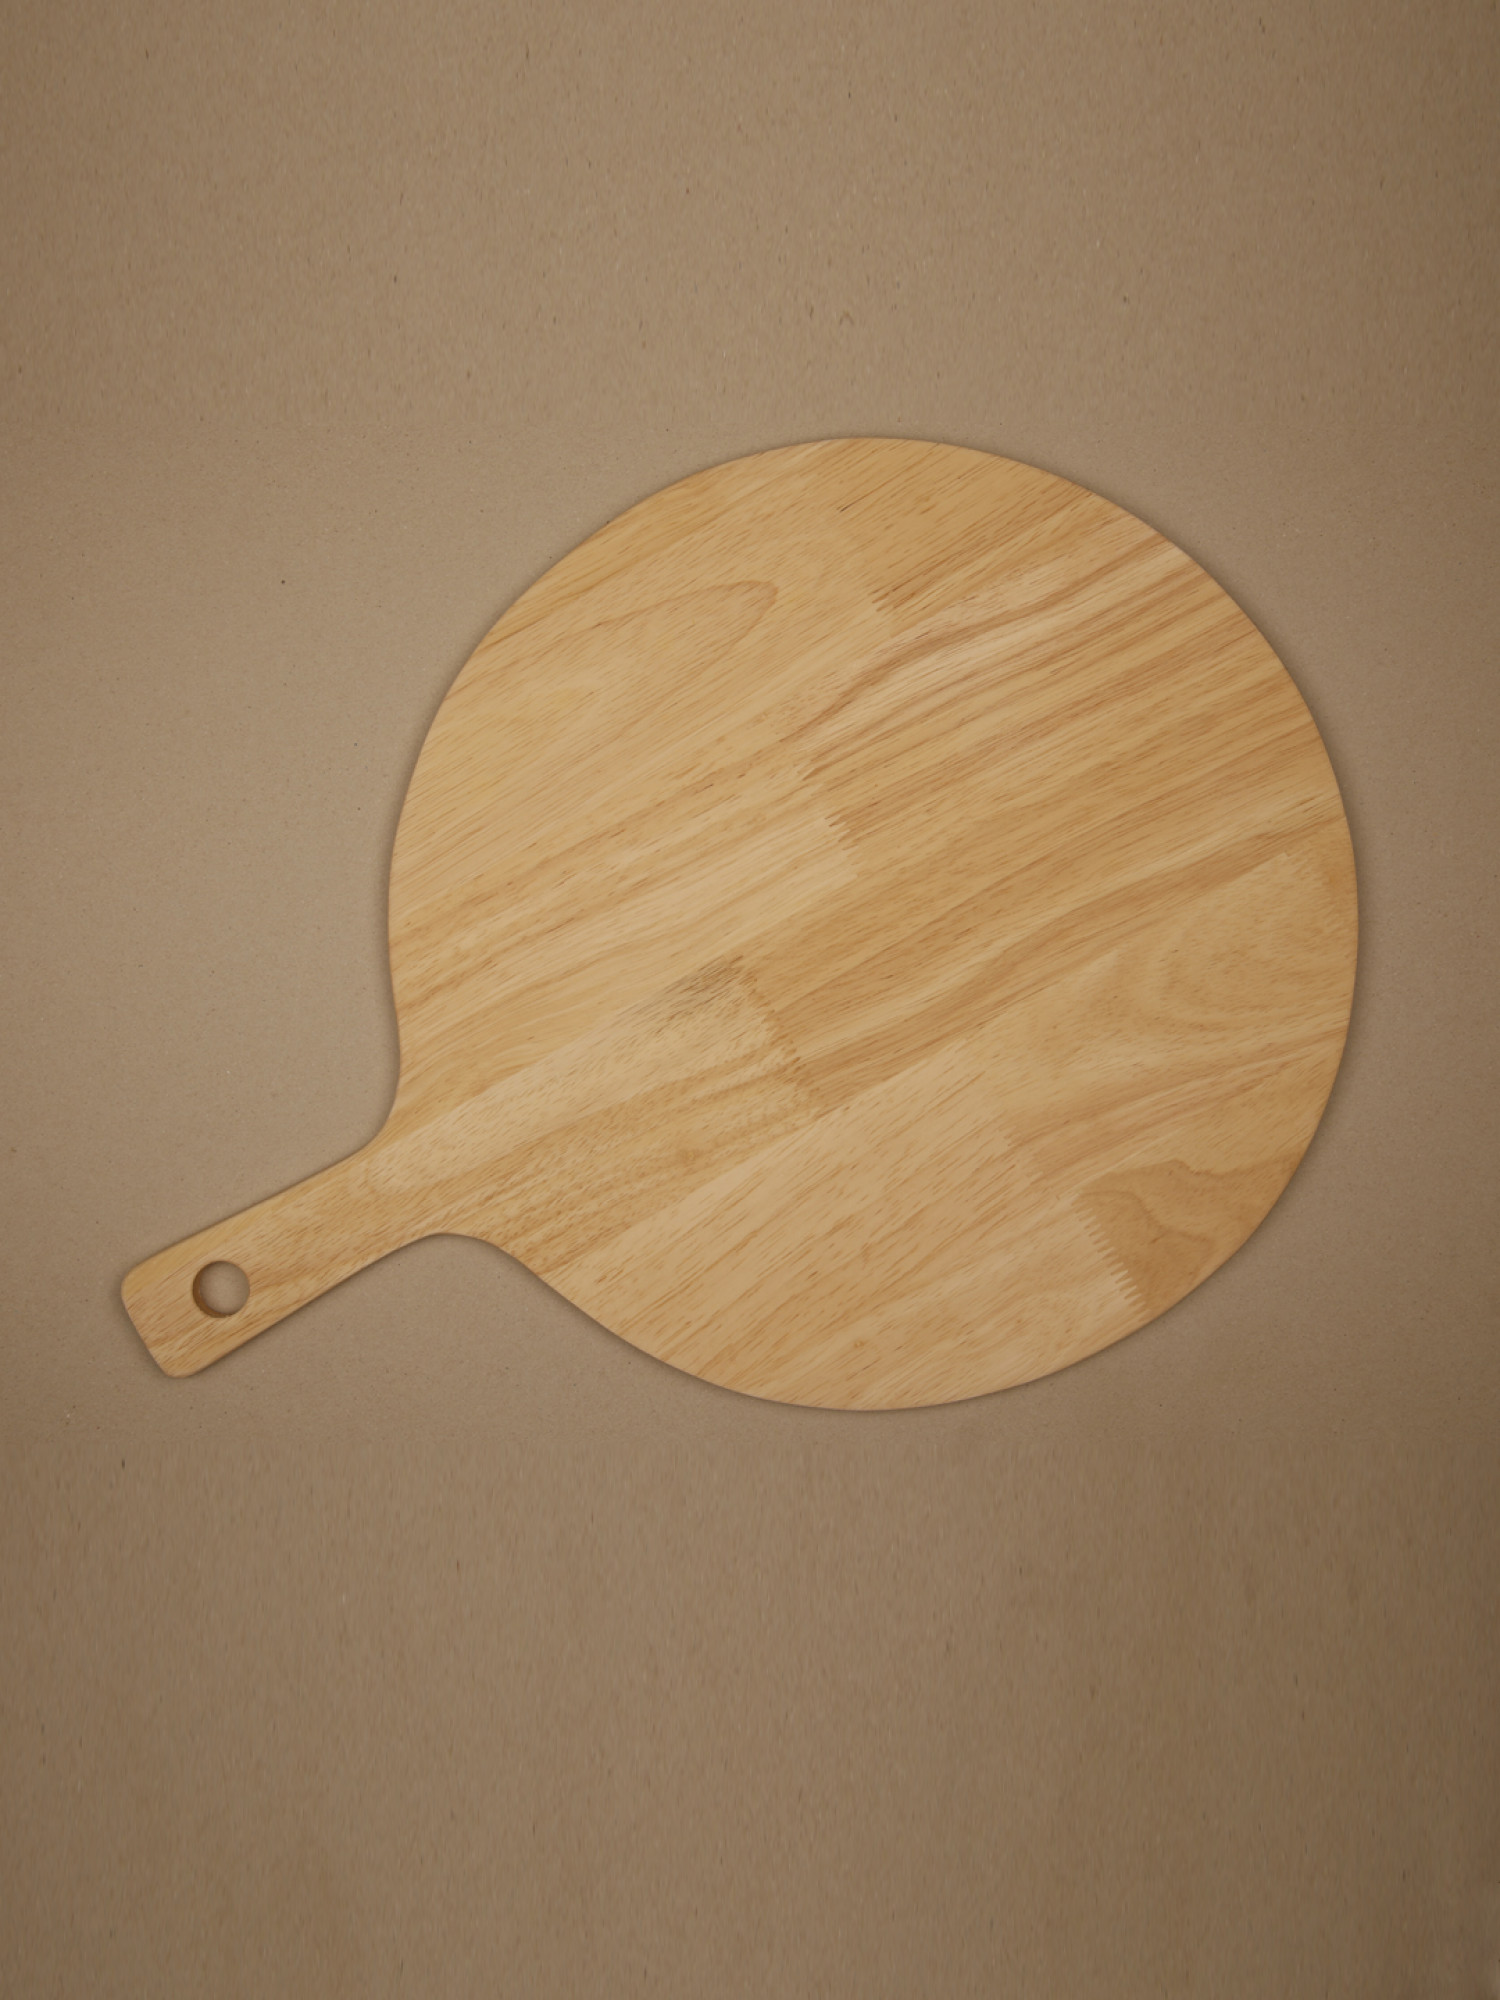 Charcuterie/Chopping/Cutting/Serving Board Made of Rubber Wood